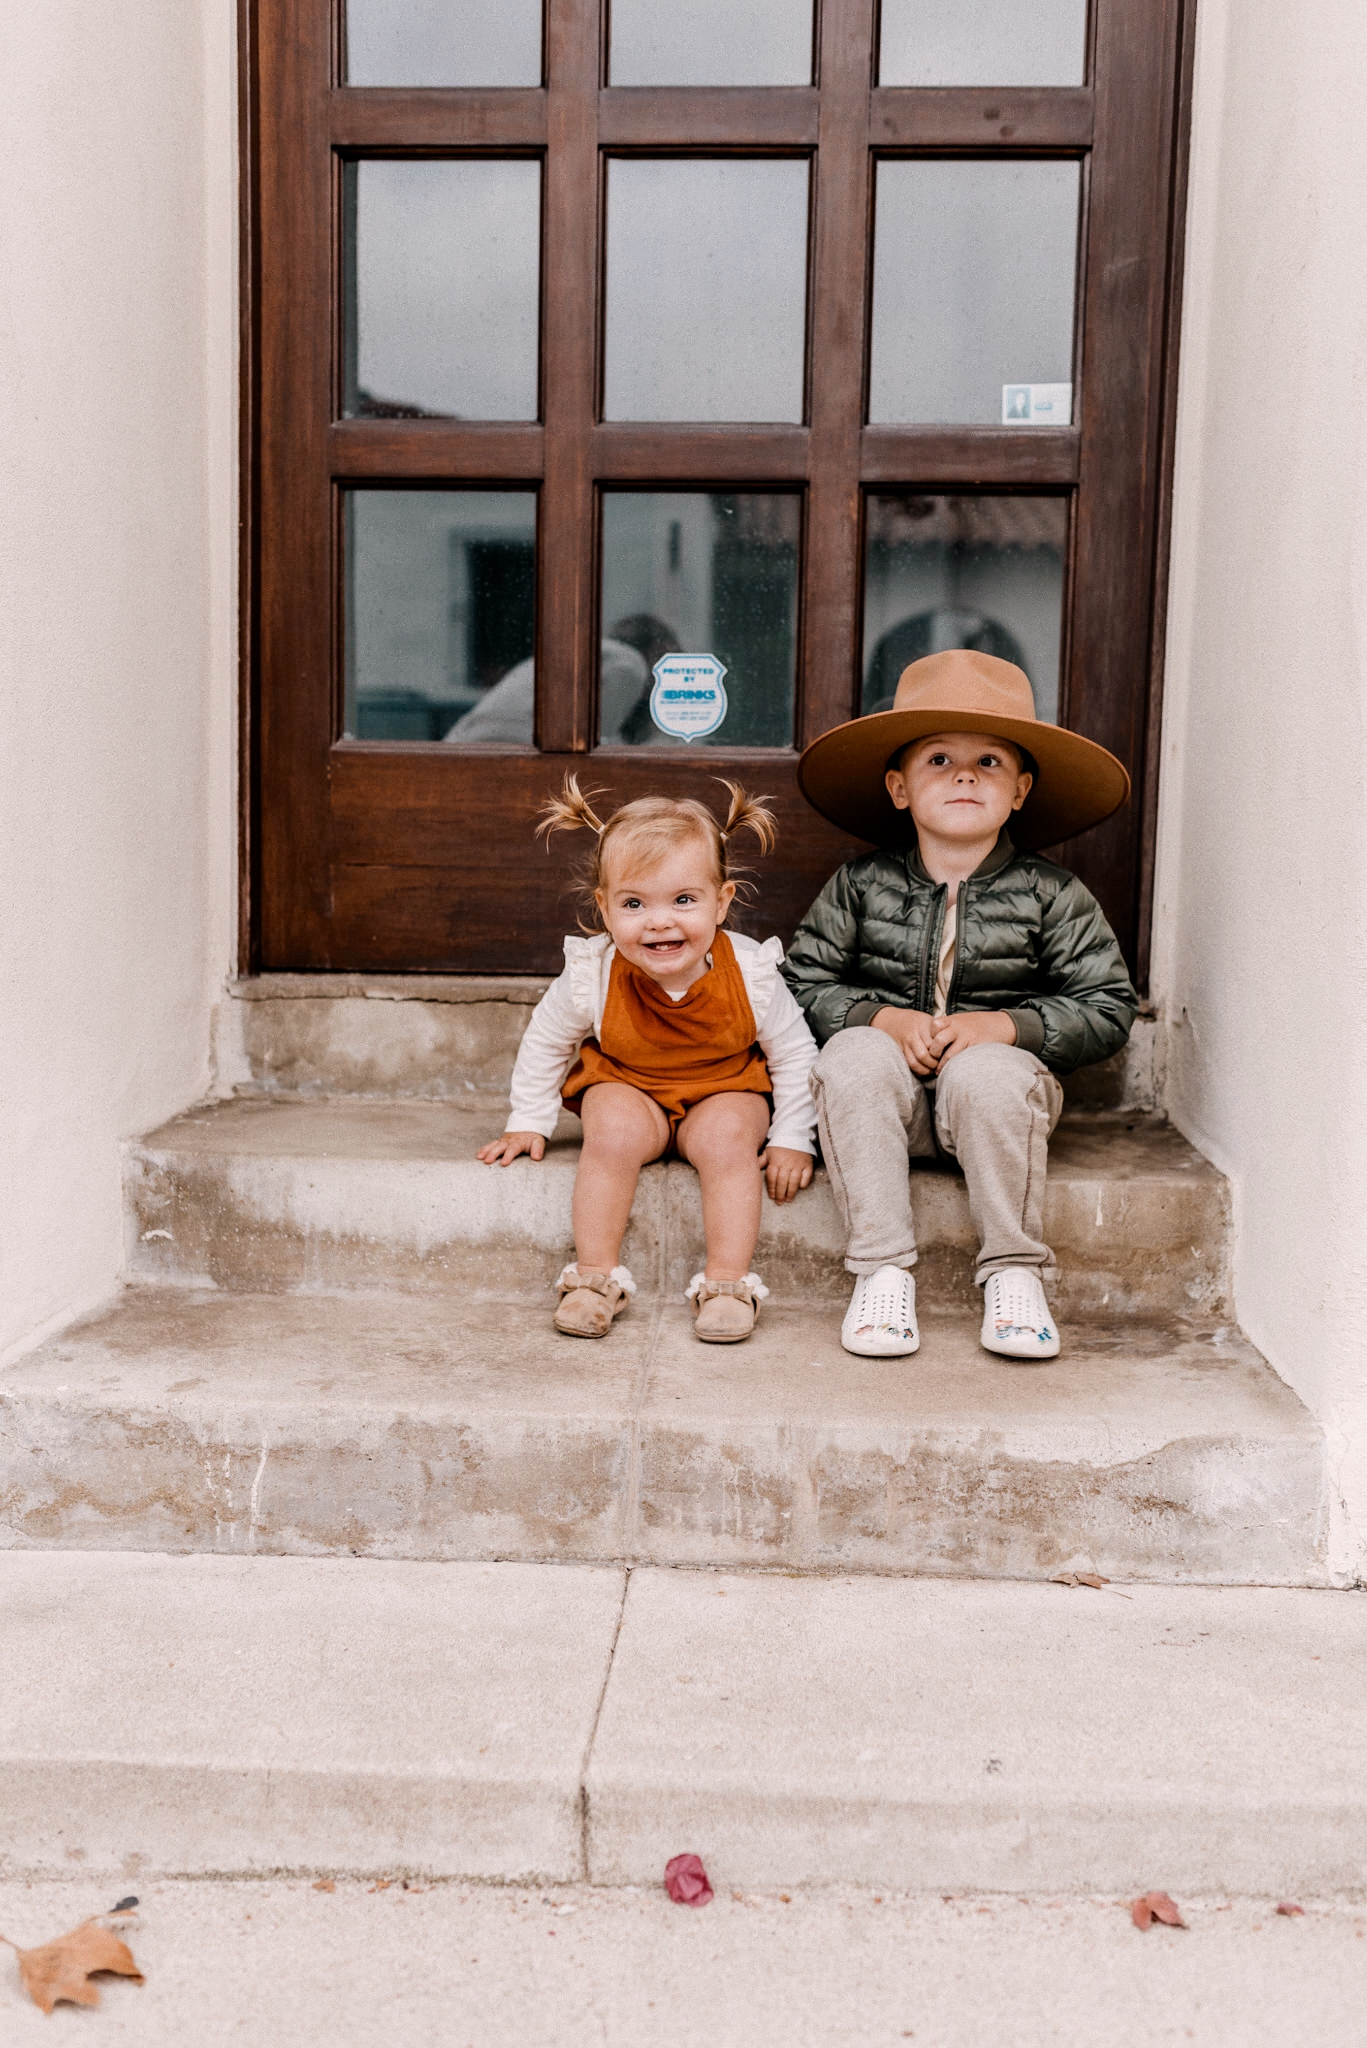 Fall fedora Hats | Kids Winter Clothes by popular San Diego motherhood blog, Navy Grace: image of a young boy and girl sitting together on some cement steps.